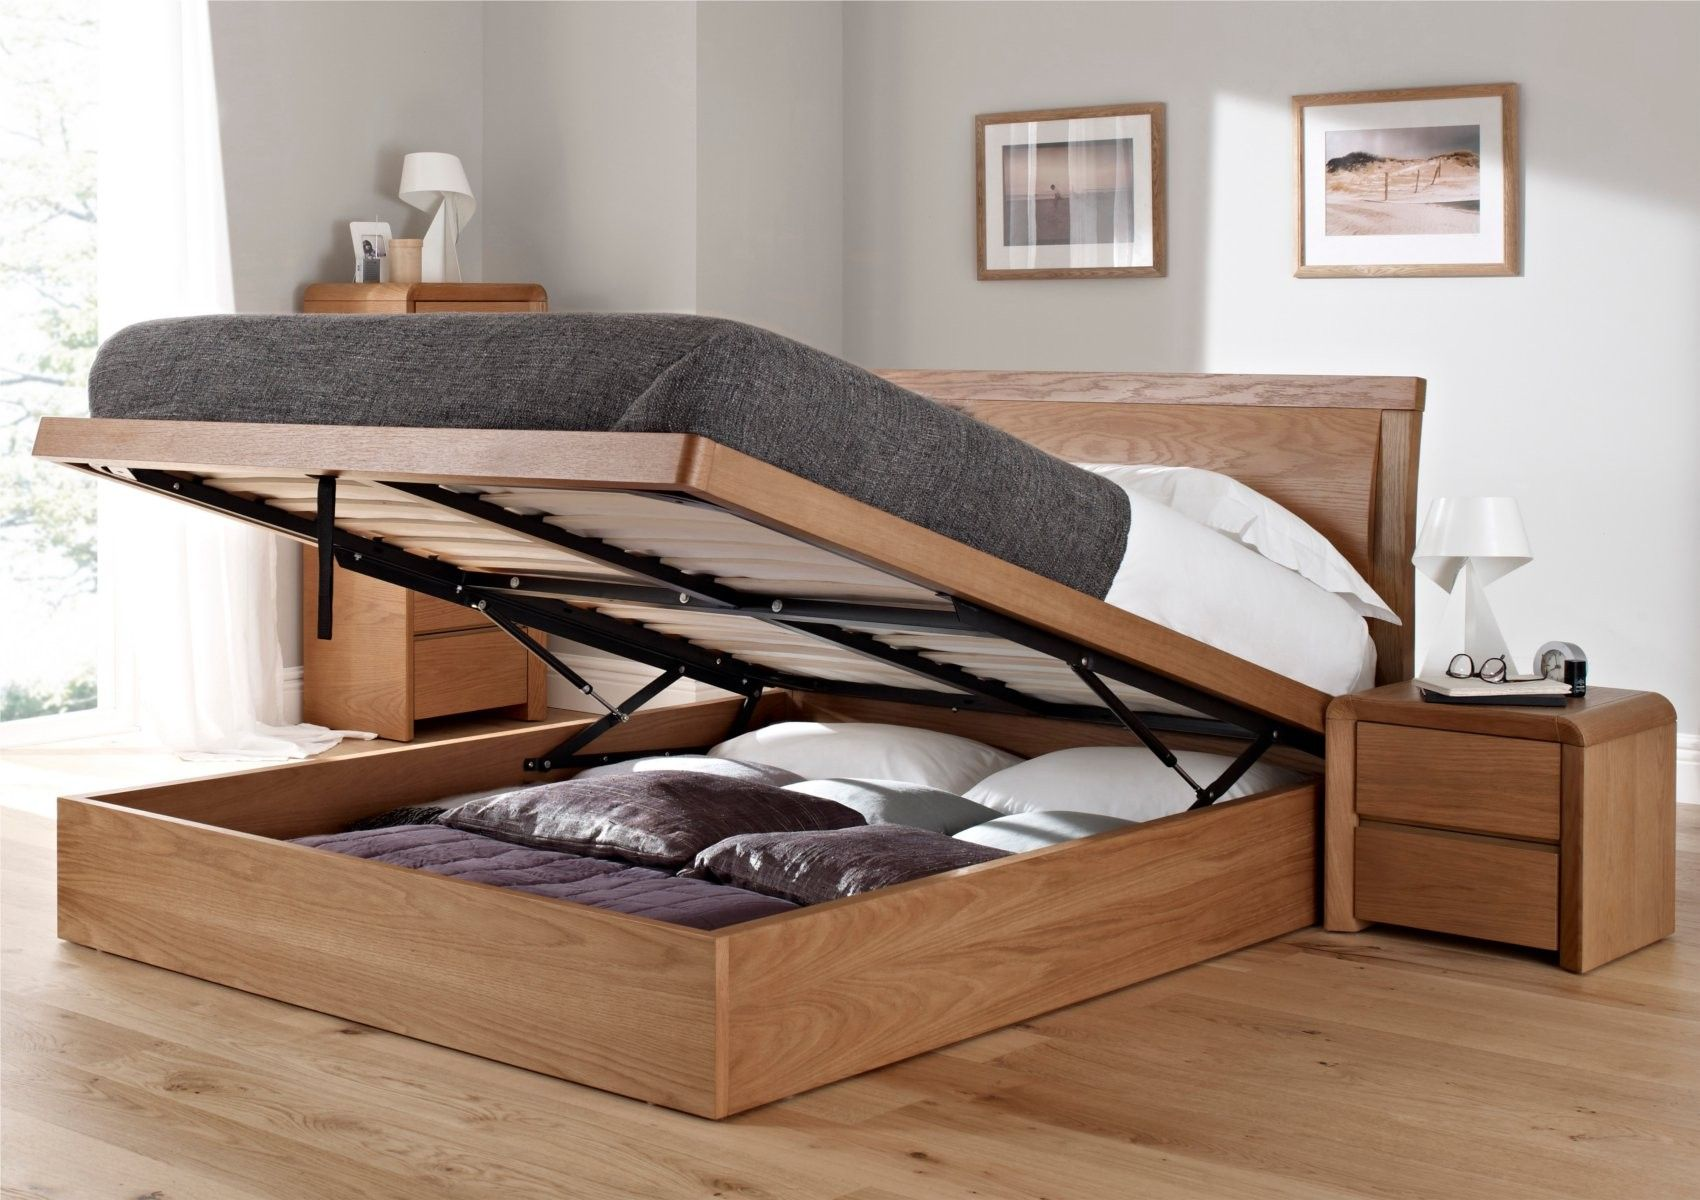 Prepossessing King Size Ottoman Storage Bed New In Apartment Modern Apartments E Saving Furniture Oak